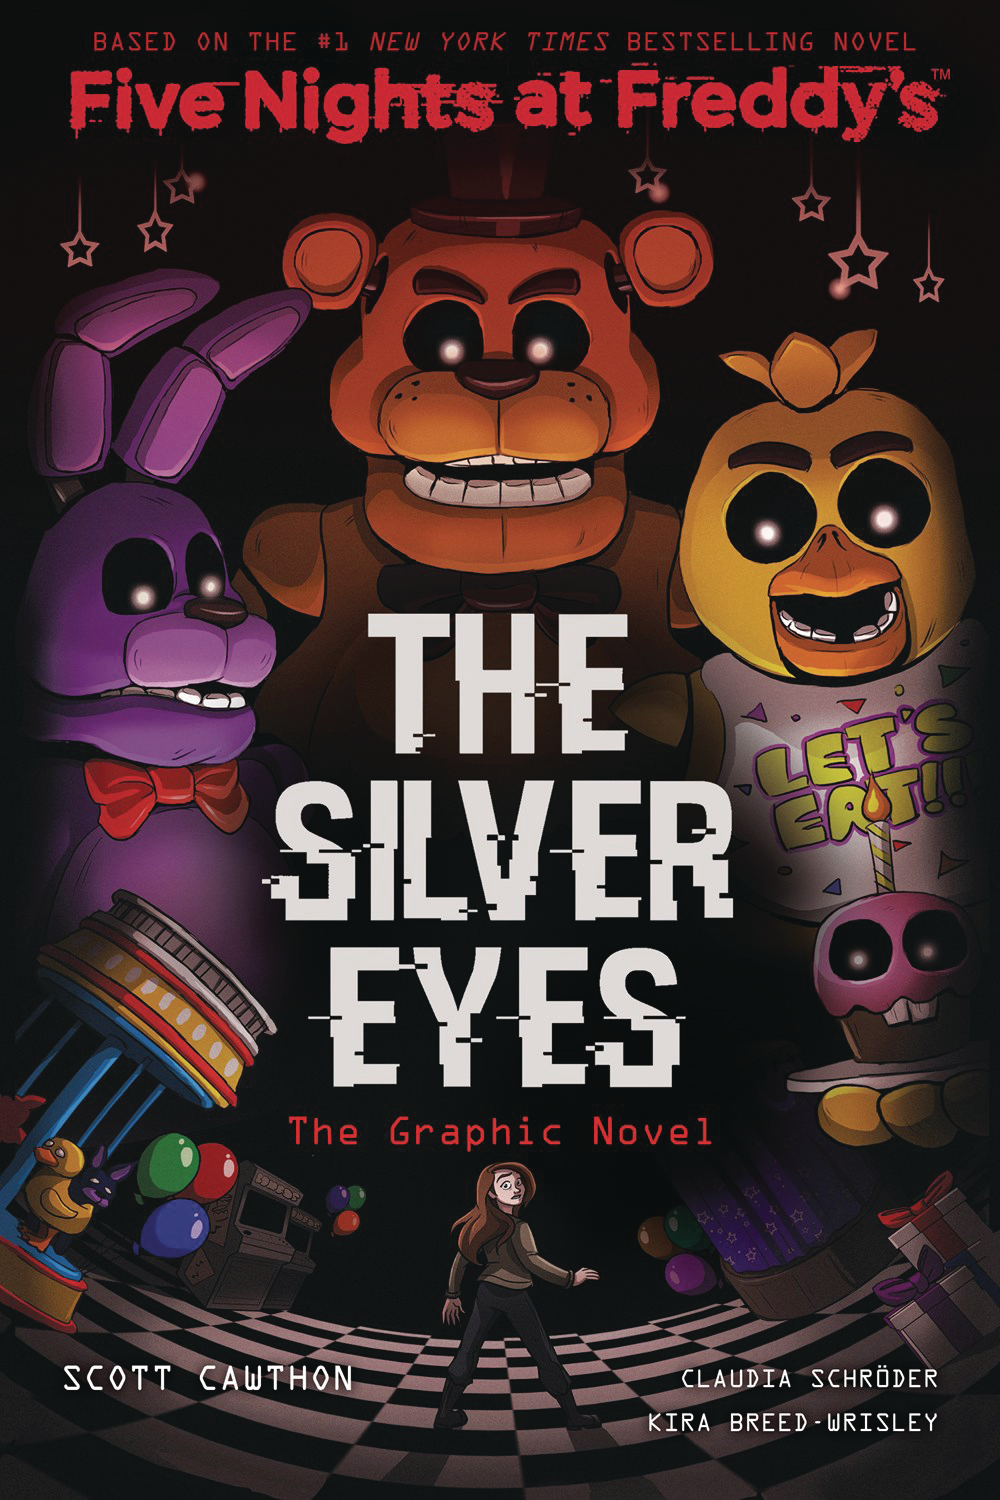 FIVE NIGHTS AT FREDDYS GN VOL 01 SILVER EYES